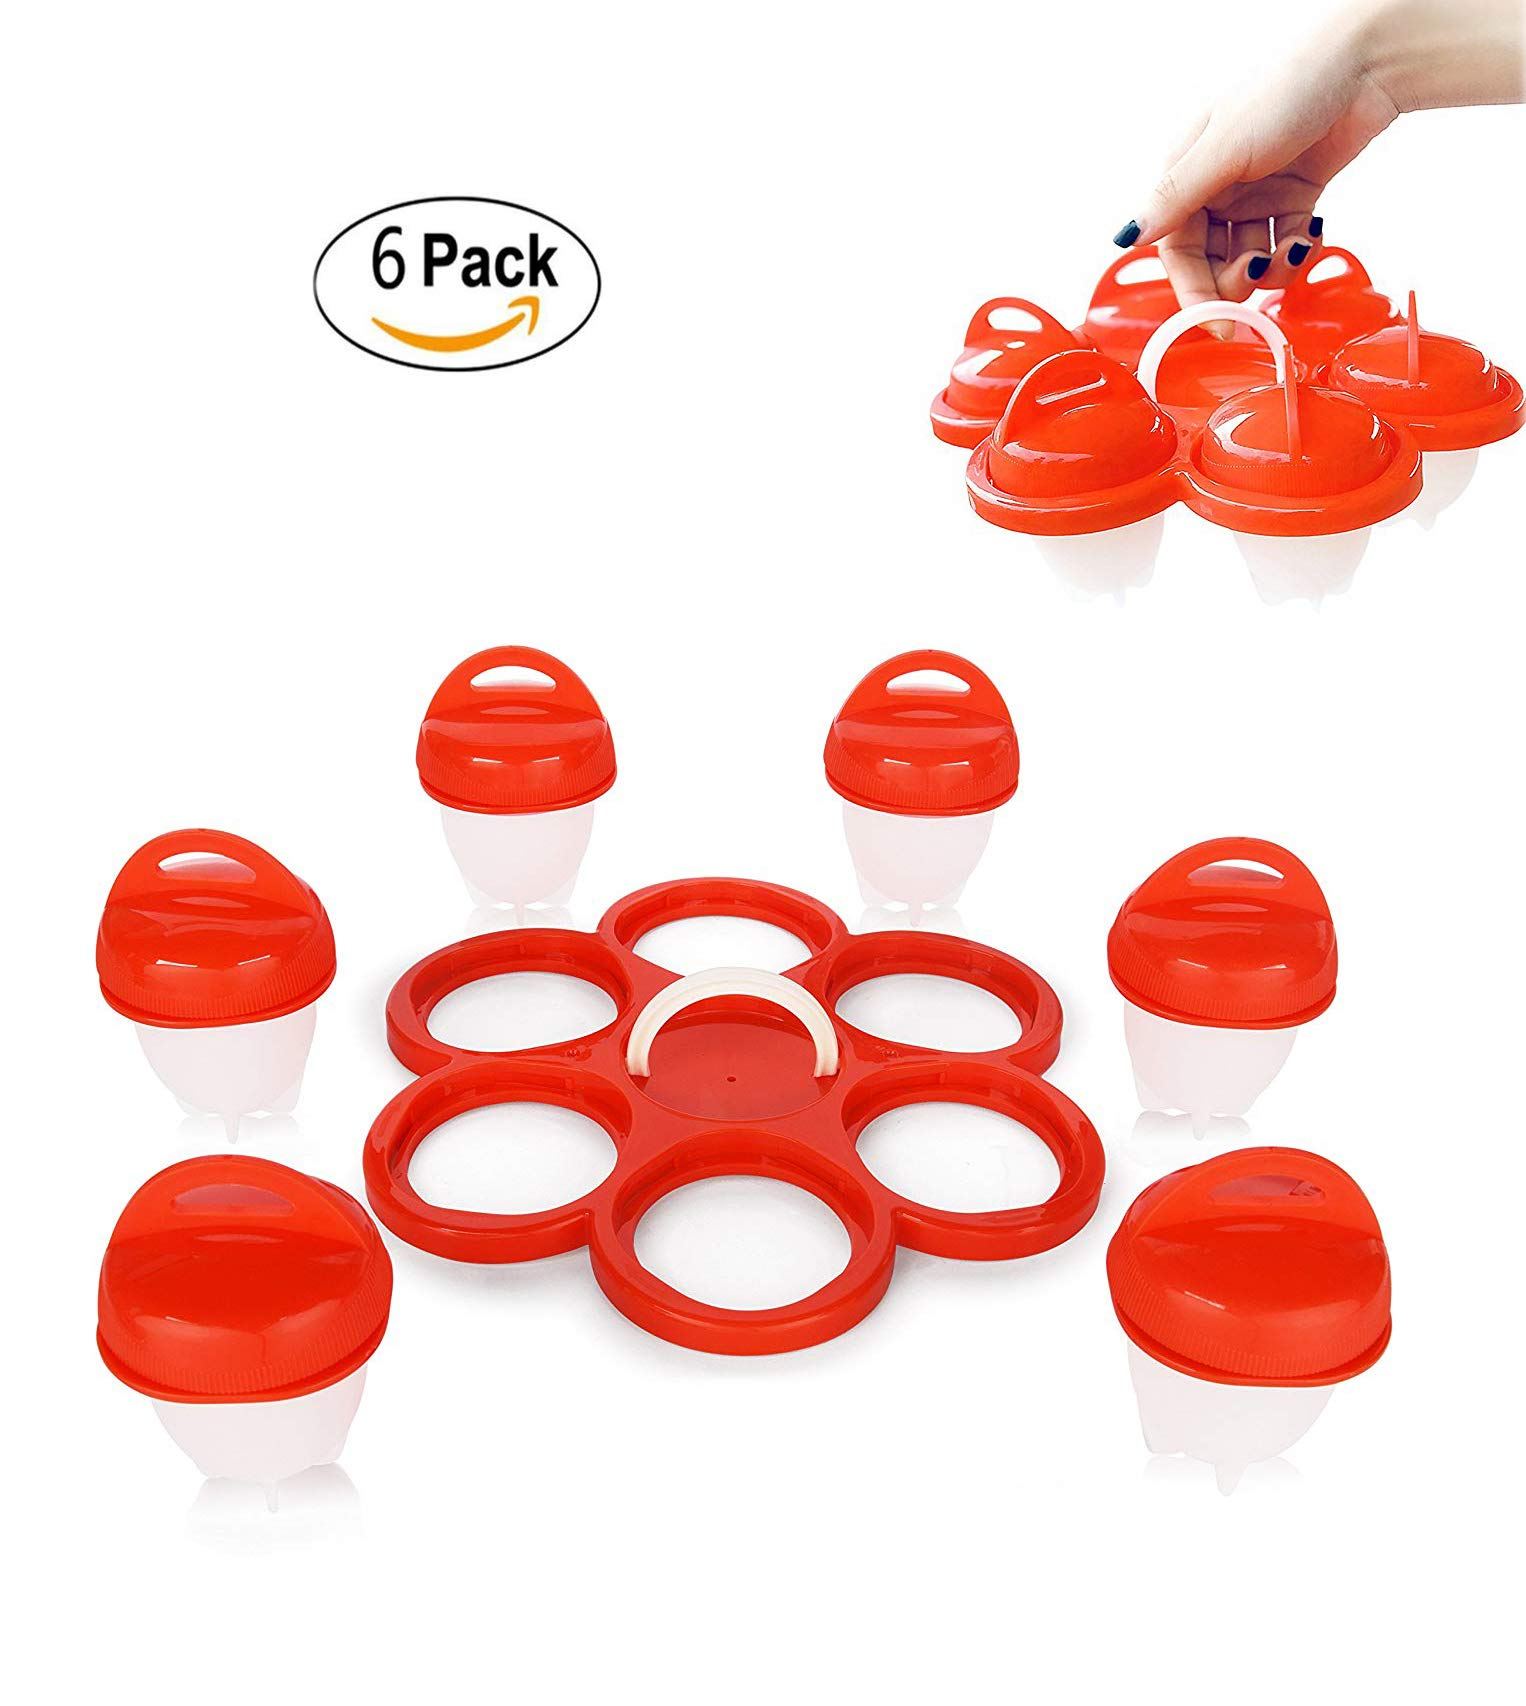 Mcgreen 6 Pack Egglets Egg Cooker Set Non Stick Hard Boiled Eggs Egg with Egg Shell Silicone Eggs Boiler Cookers